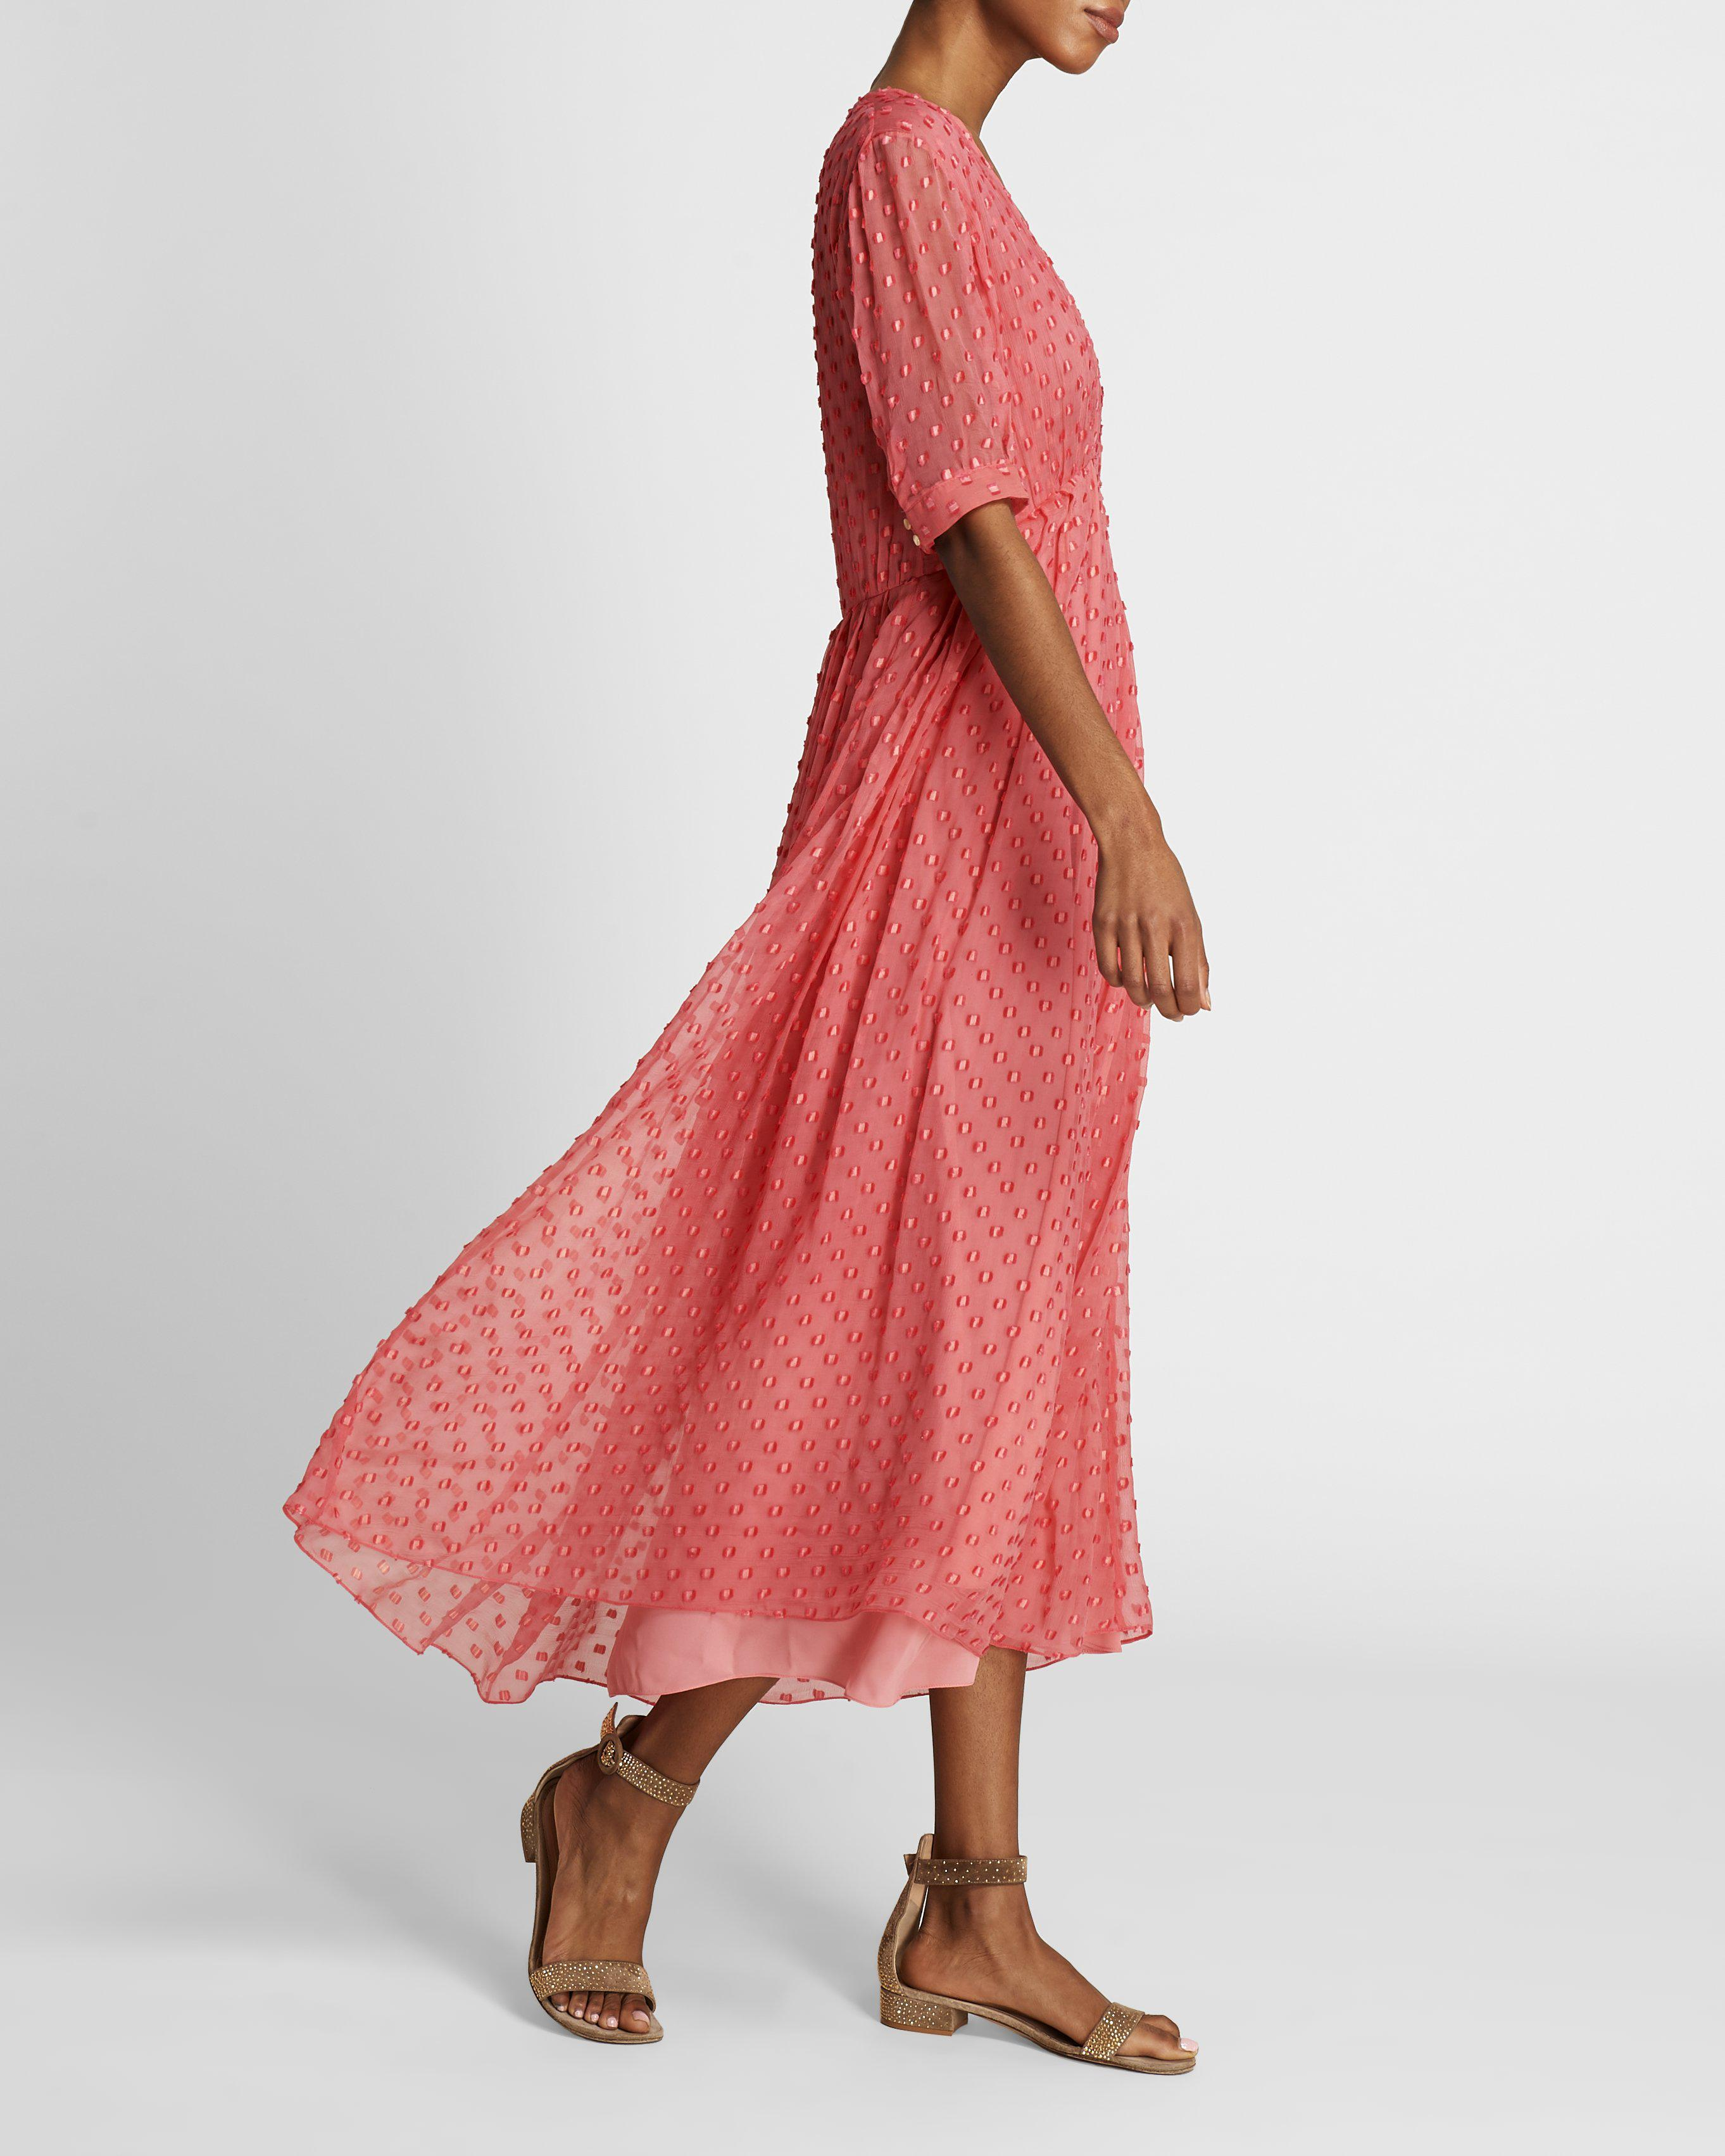 The Ivy Dress   Coral 3